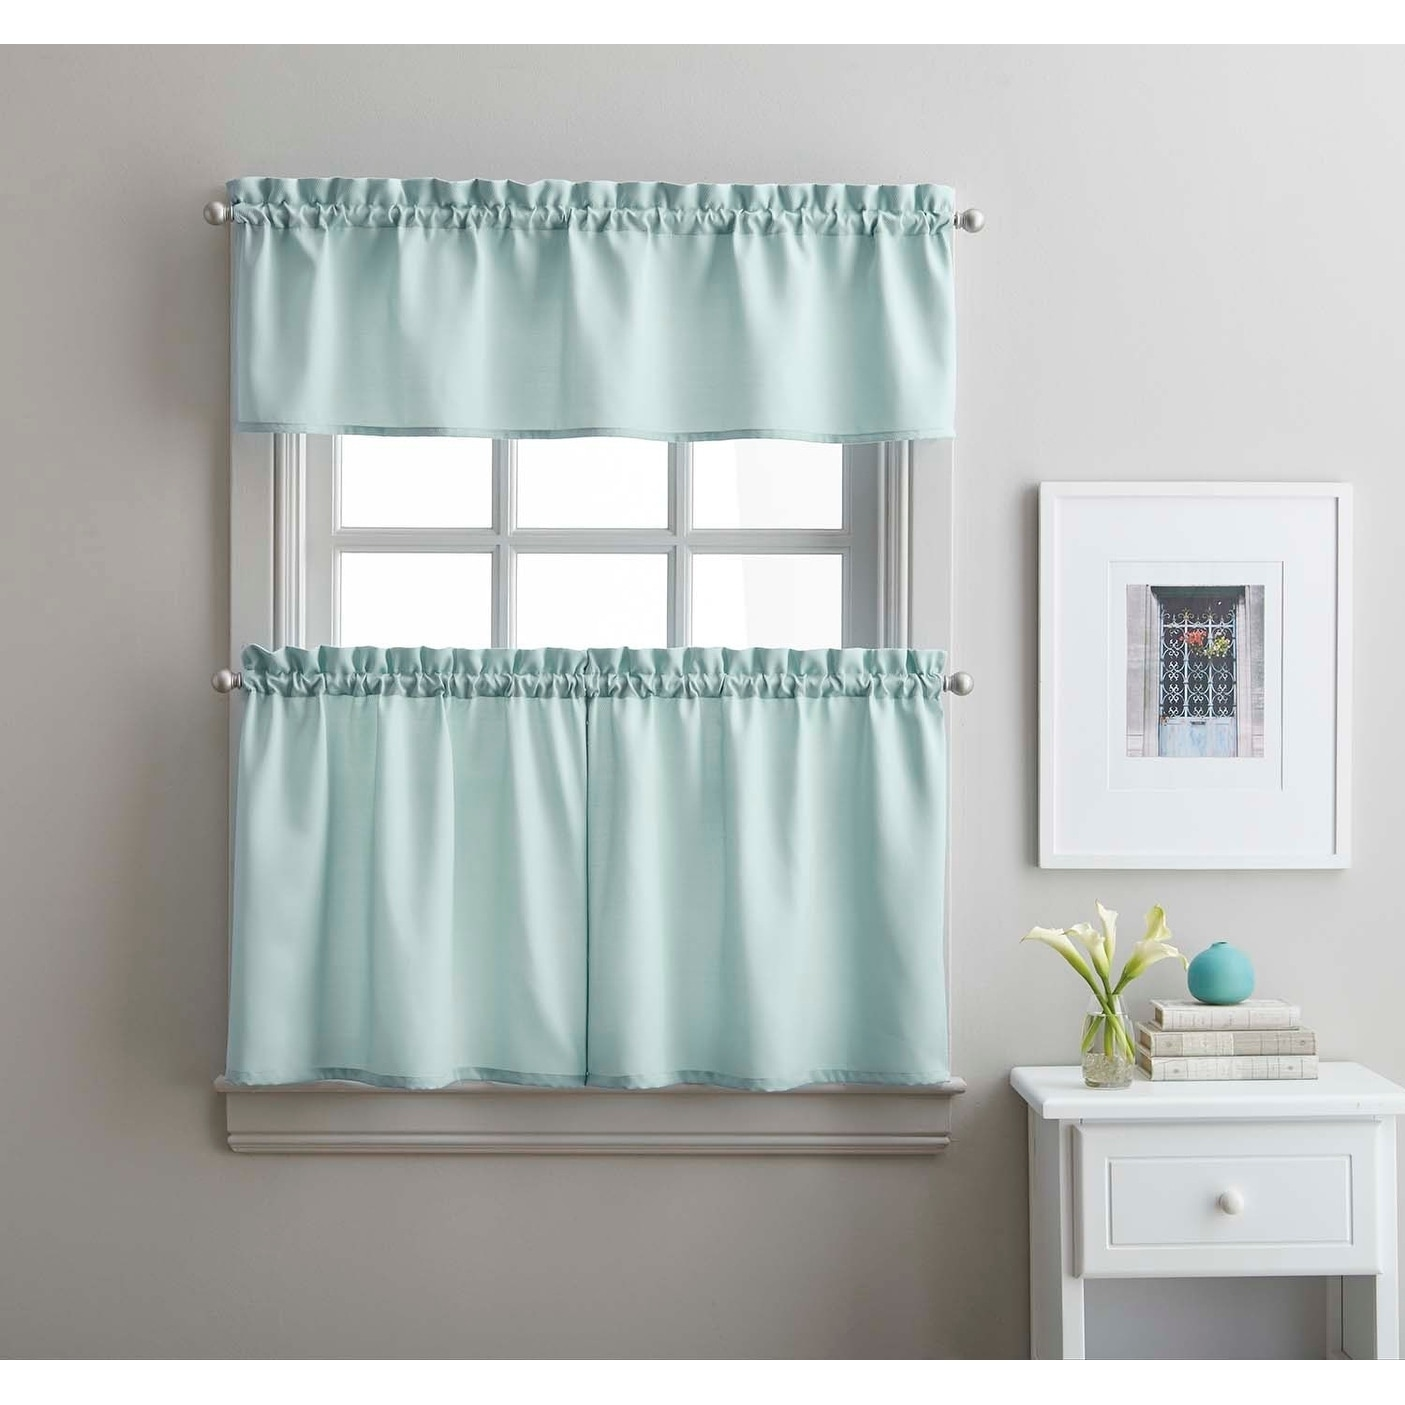 Twill 3 Piece Kitchen Curtain Tier Set